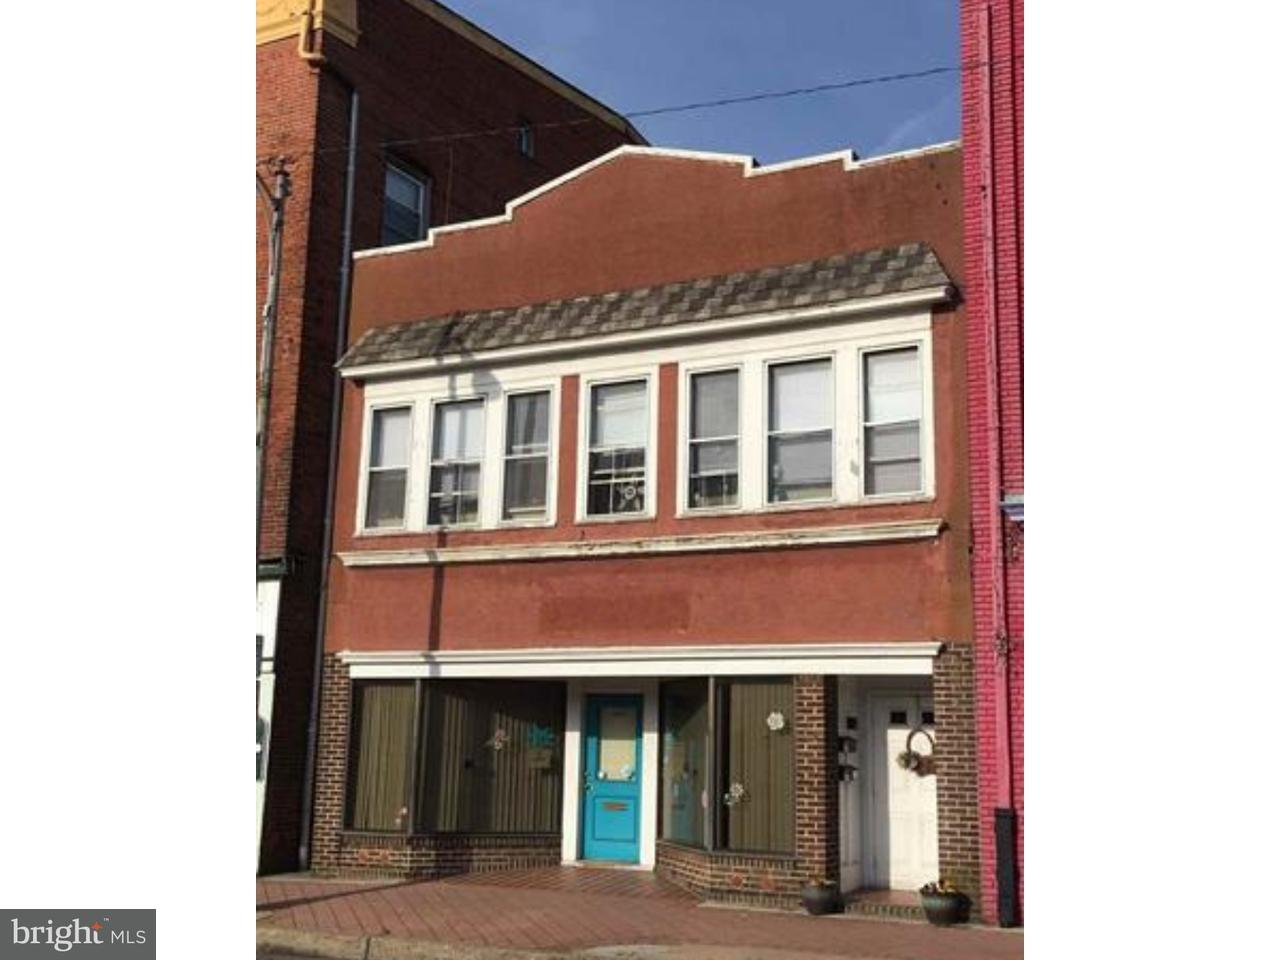 Single Family Home for Rent at 208 N HIGH ST #1ST FL Millville, New Jersey 08332 United States